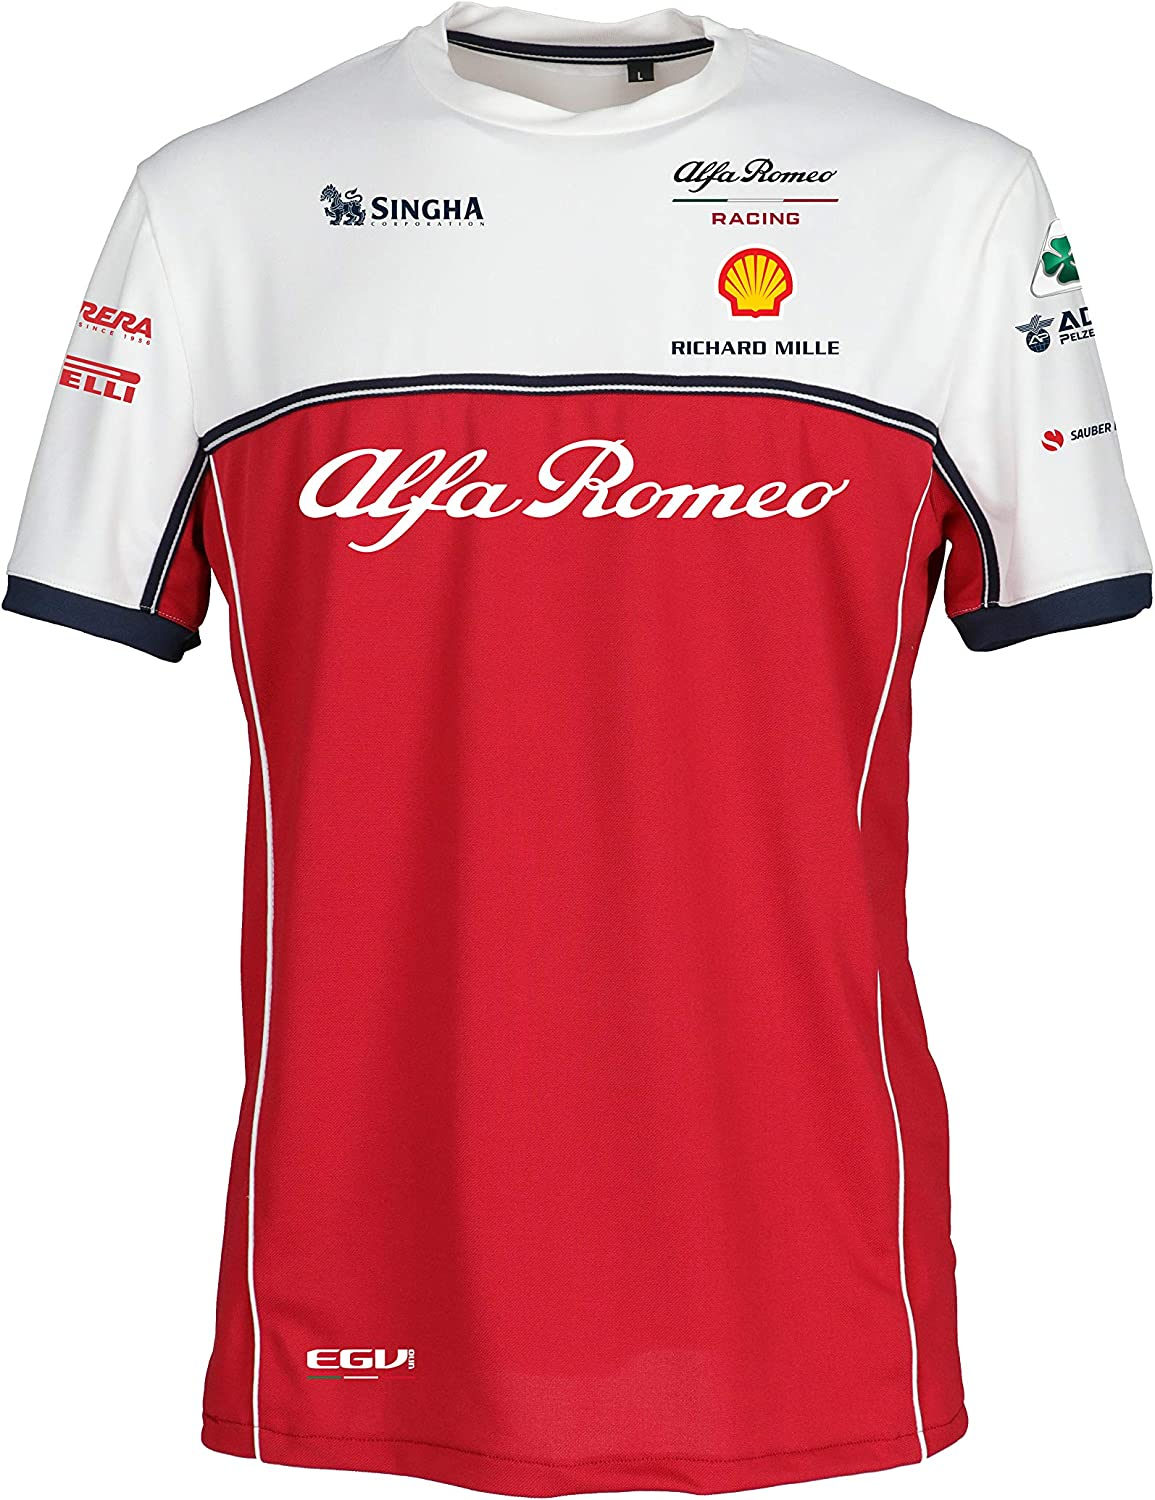 Alfa Romeo Racing F1 2019 Men's Team T-Shirt (M)